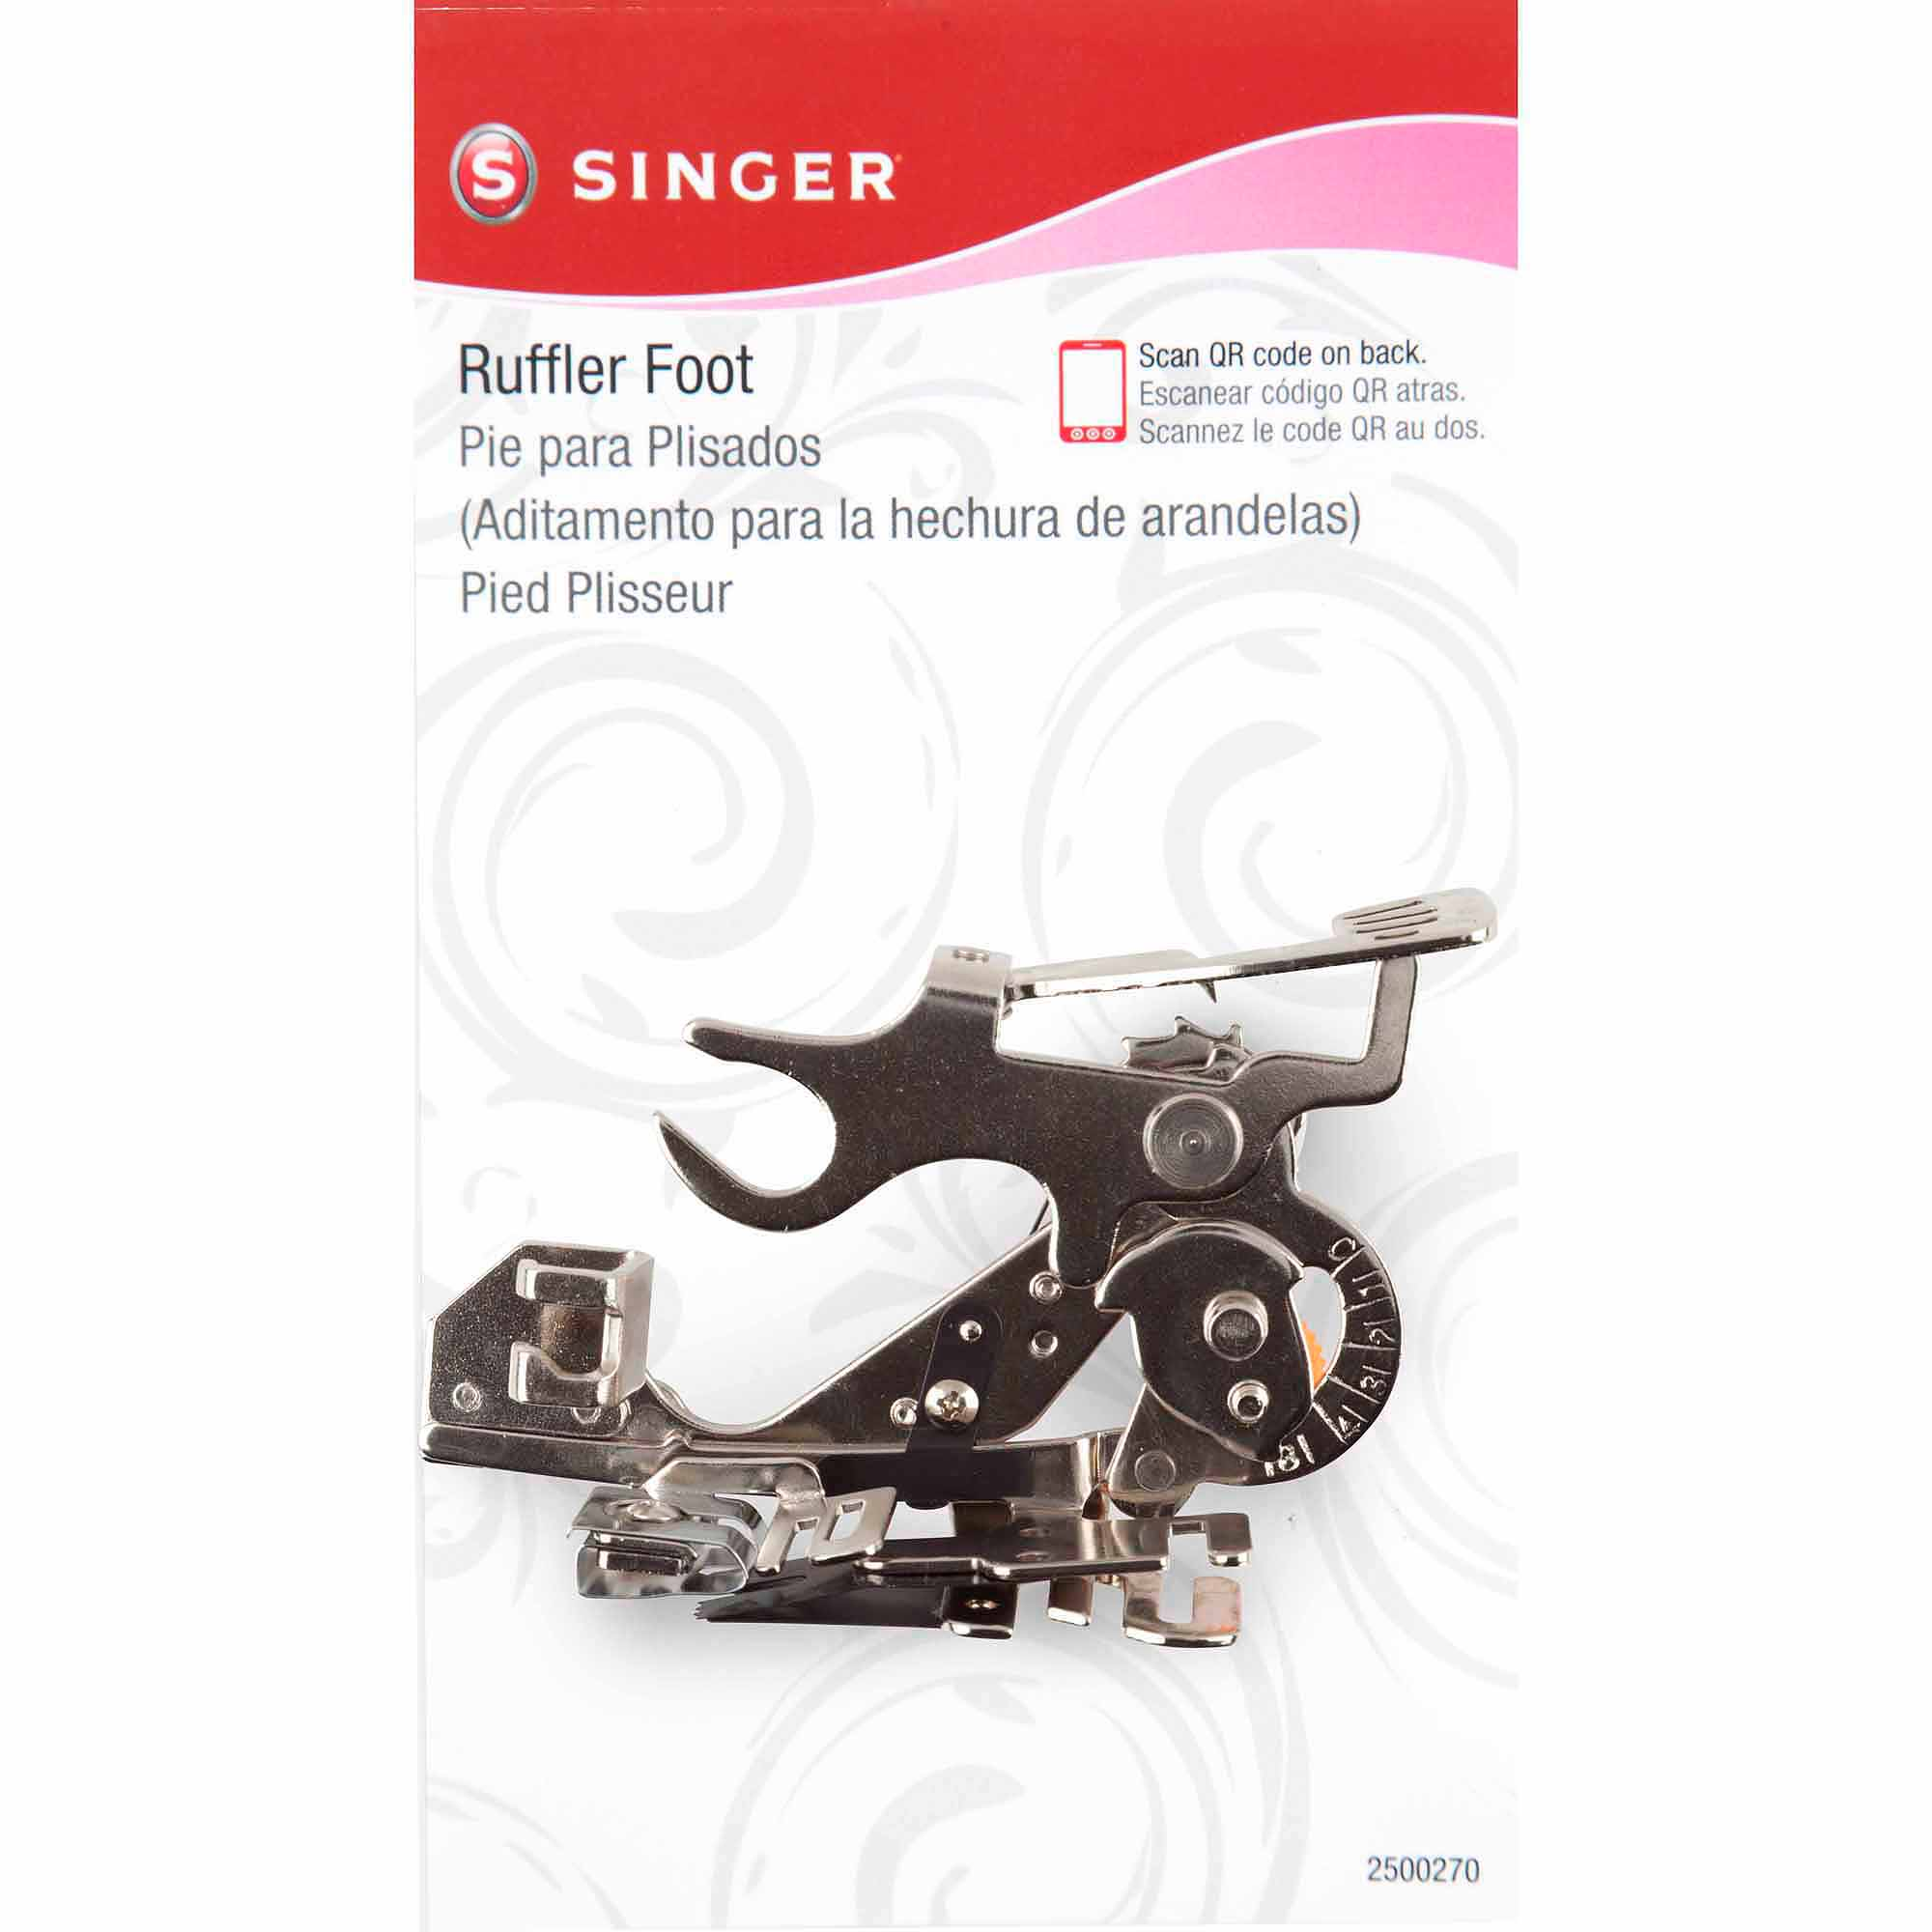 Shop for Singer Presser Feet in Sewing Machine Accessories. Buy products such as Singer All-Purpose Metal Foot for Low-Shank Sewing Machines at Walmart and save.